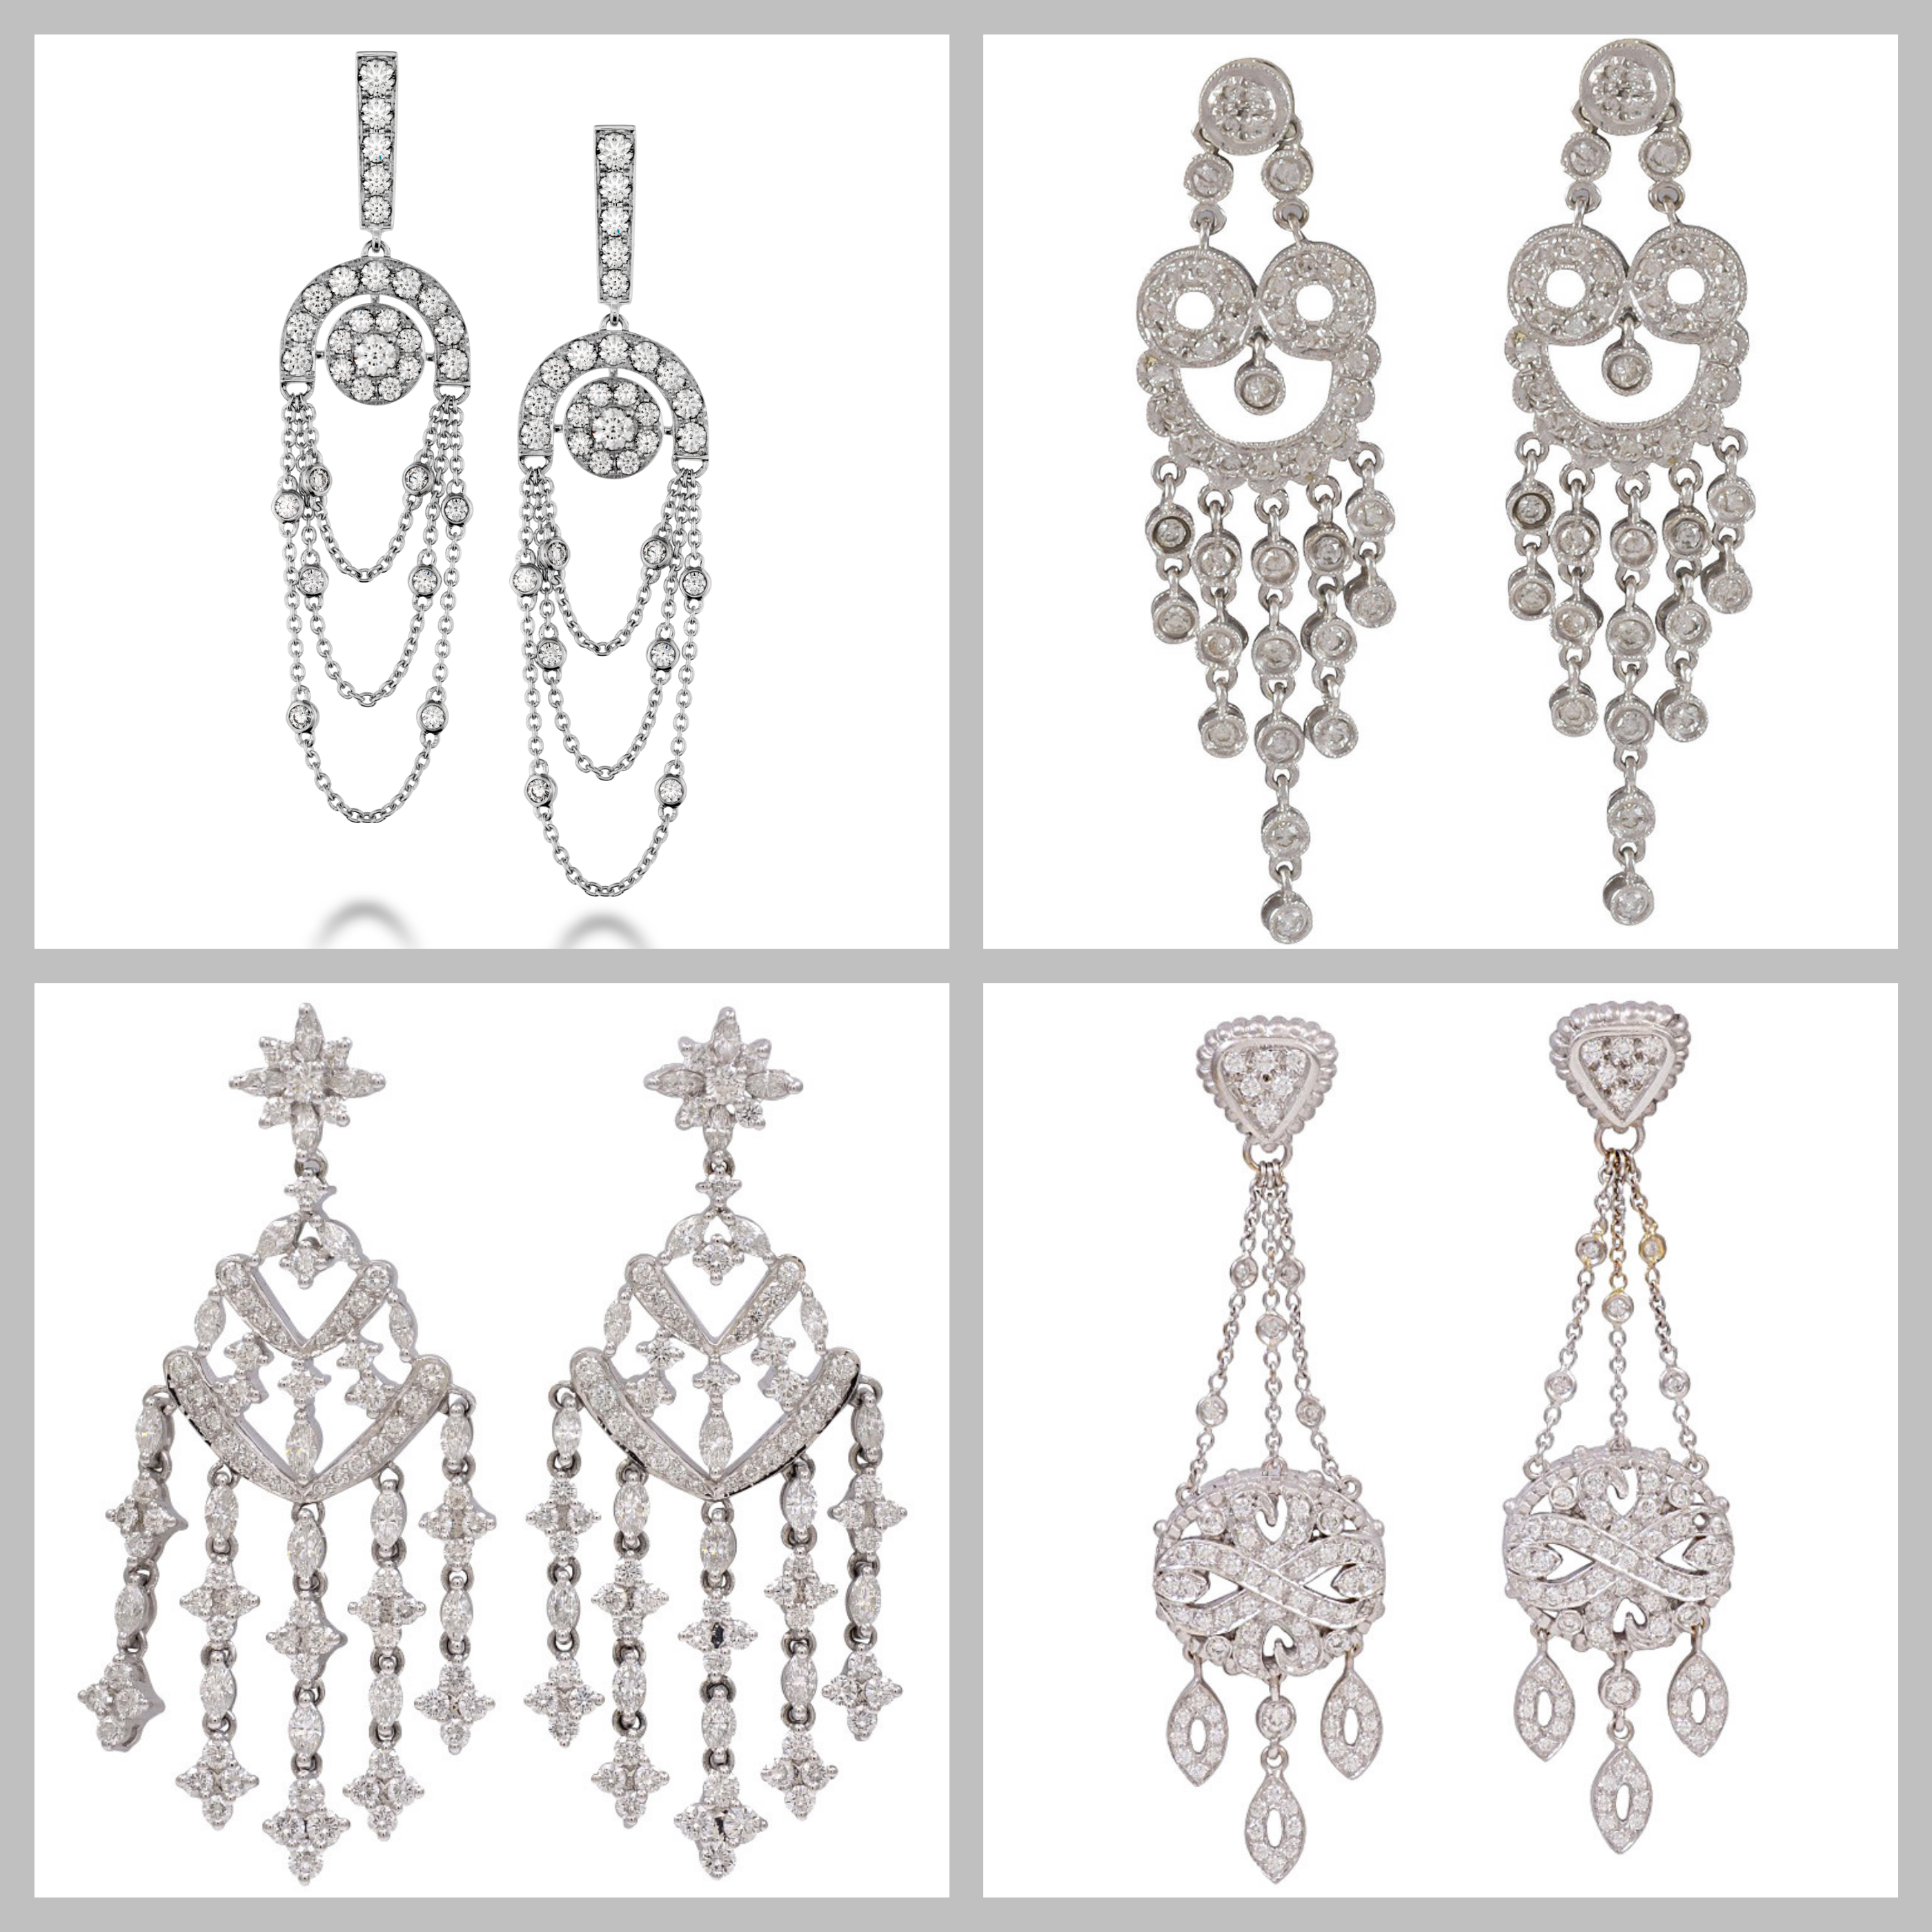 jewellery baile and earrings chandelier chandeliers pin